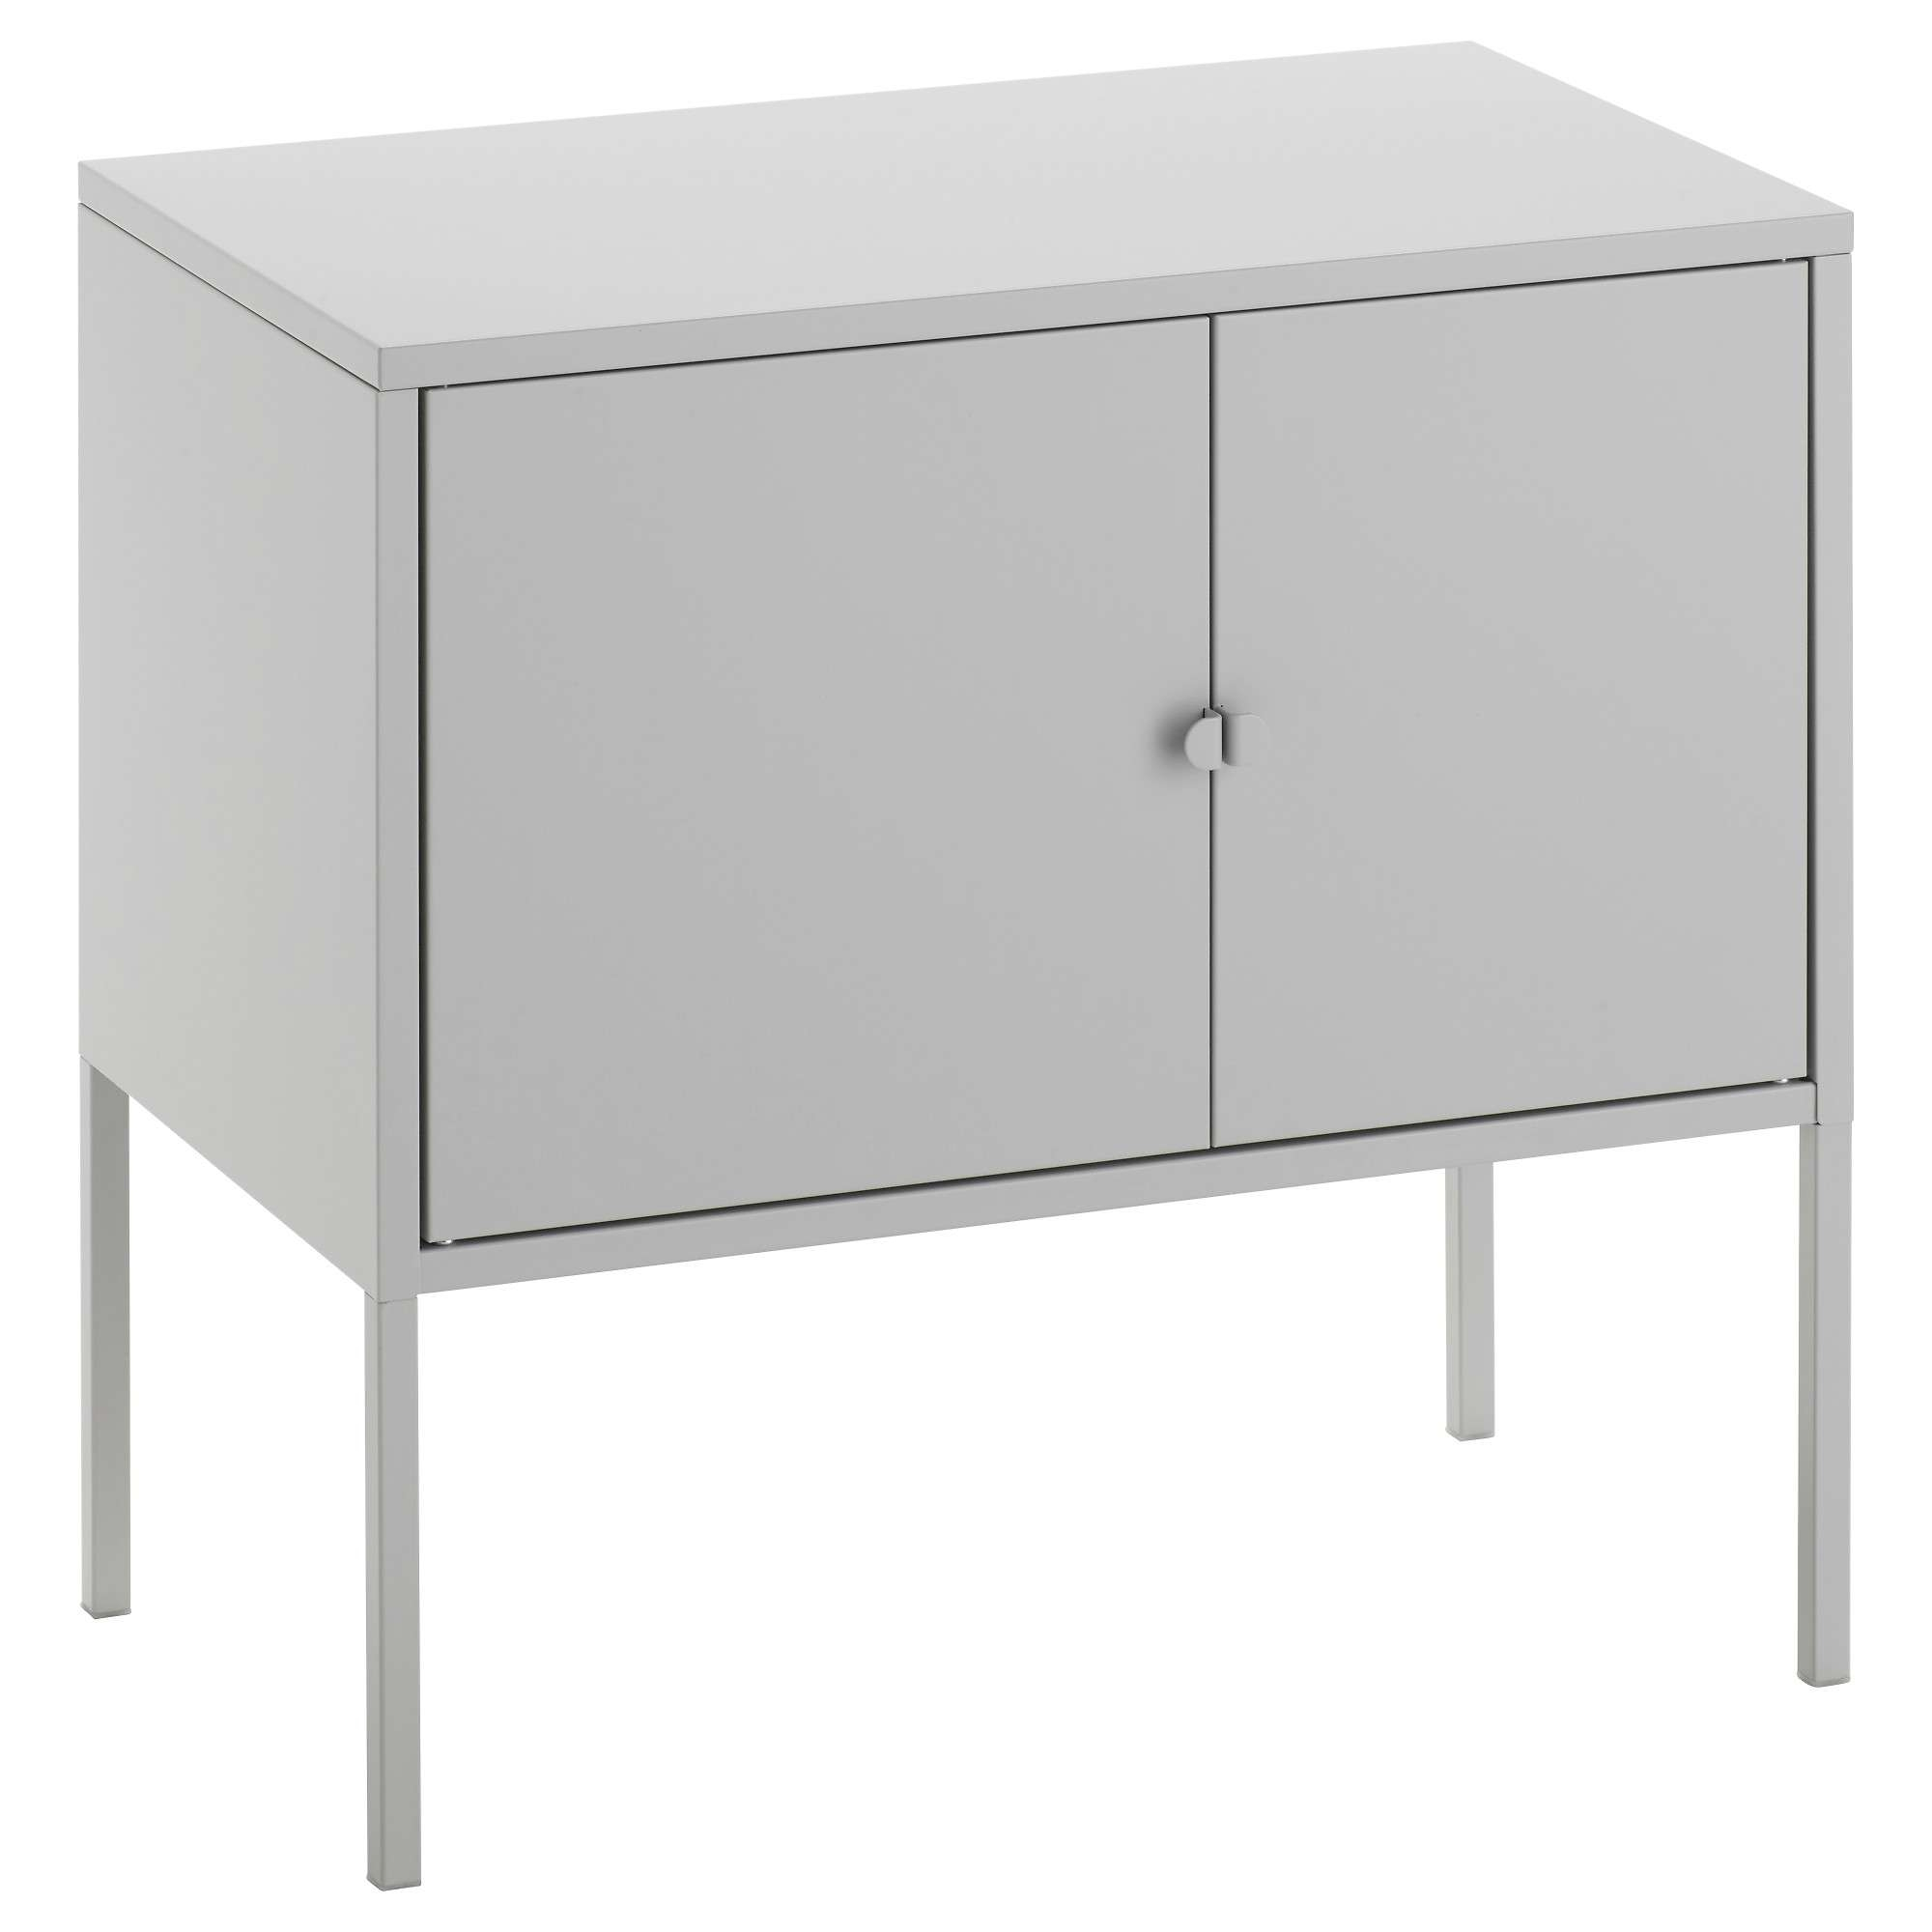 Cabinets & Sideboards – Ikea In Ikea Sideboards (View 3 of 20)